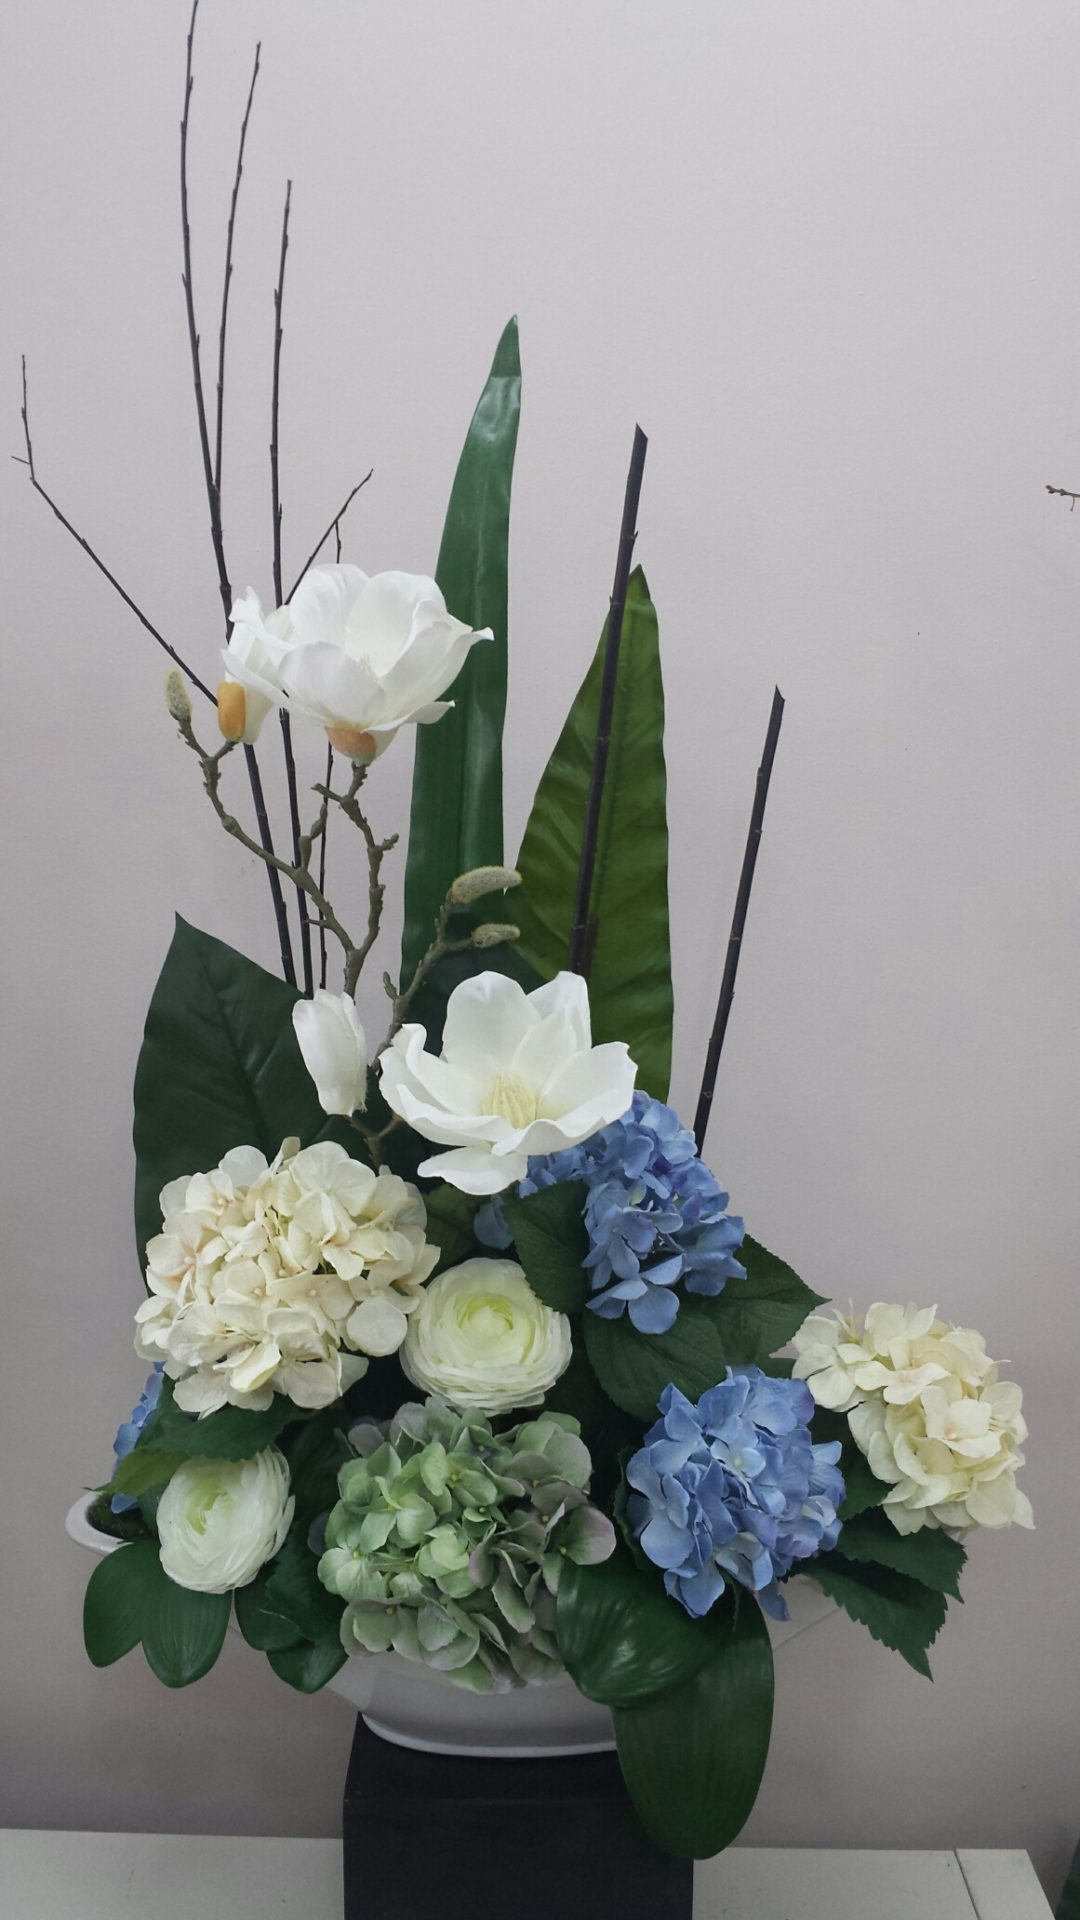 Artificial Flowers Online Adelaide Hills Delivery